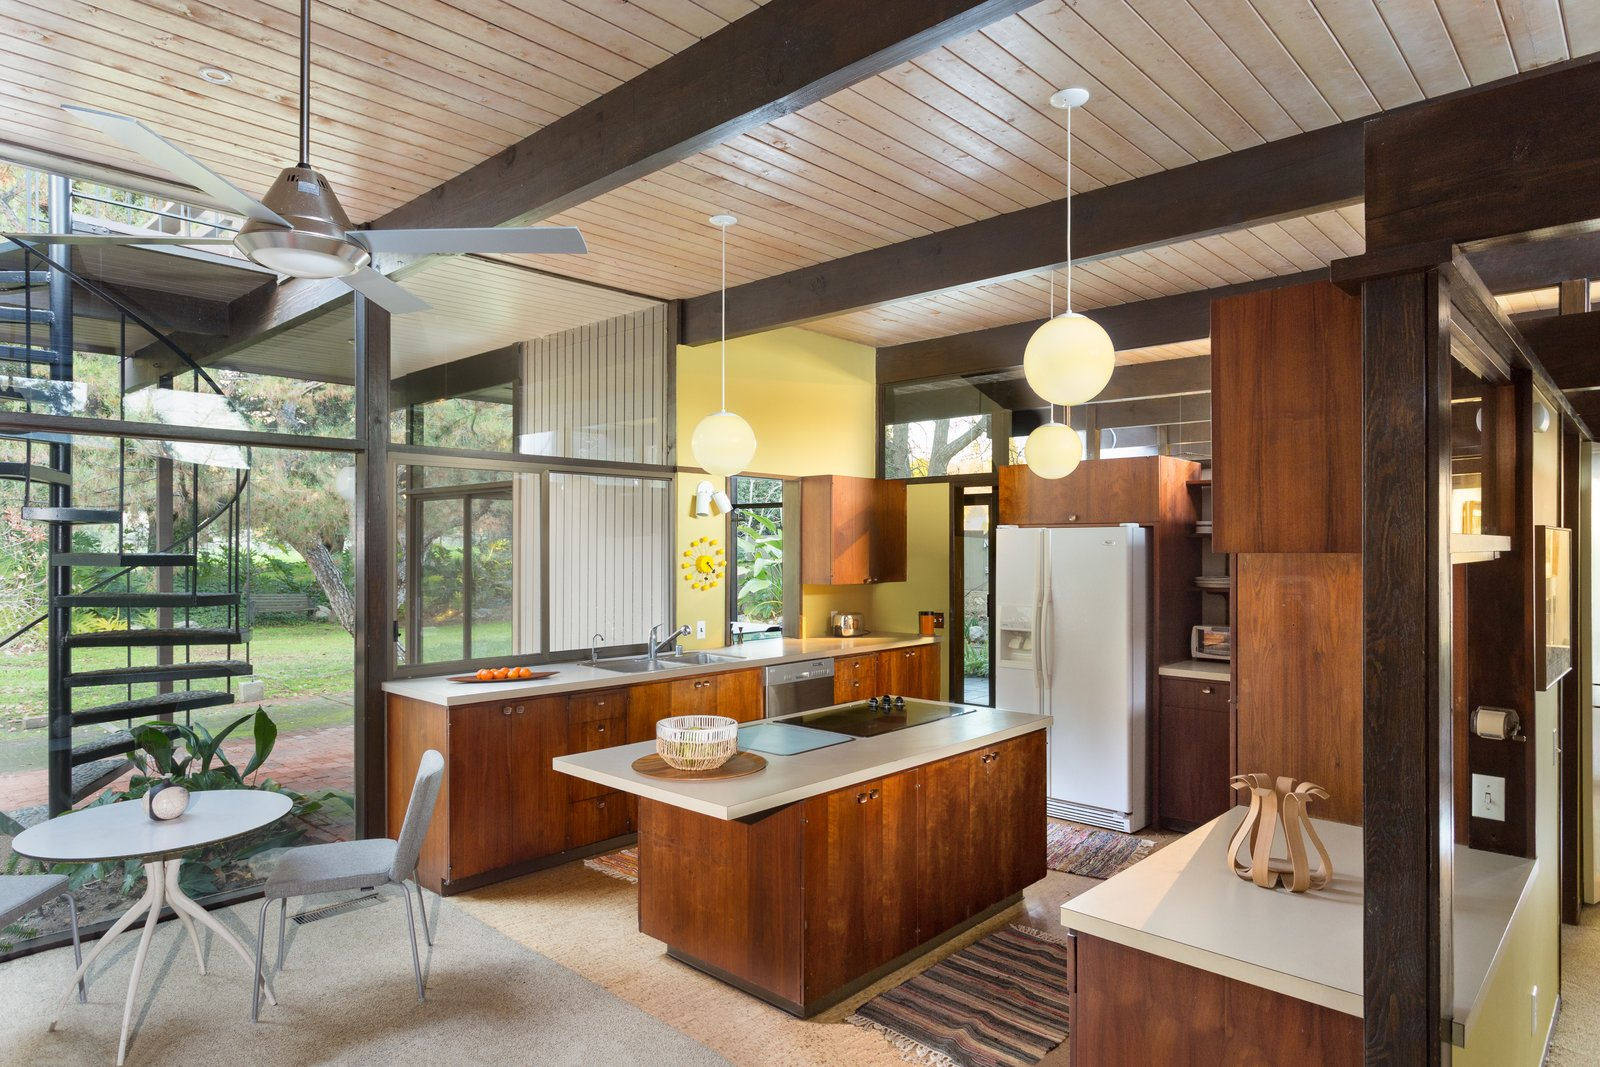 Carpeting, cork, and tile flooring run throughout the house, which is T-shaped in floor plan.  Photo 6 of 11 in Snag This Midcentury Stunner in Southern California For $799K